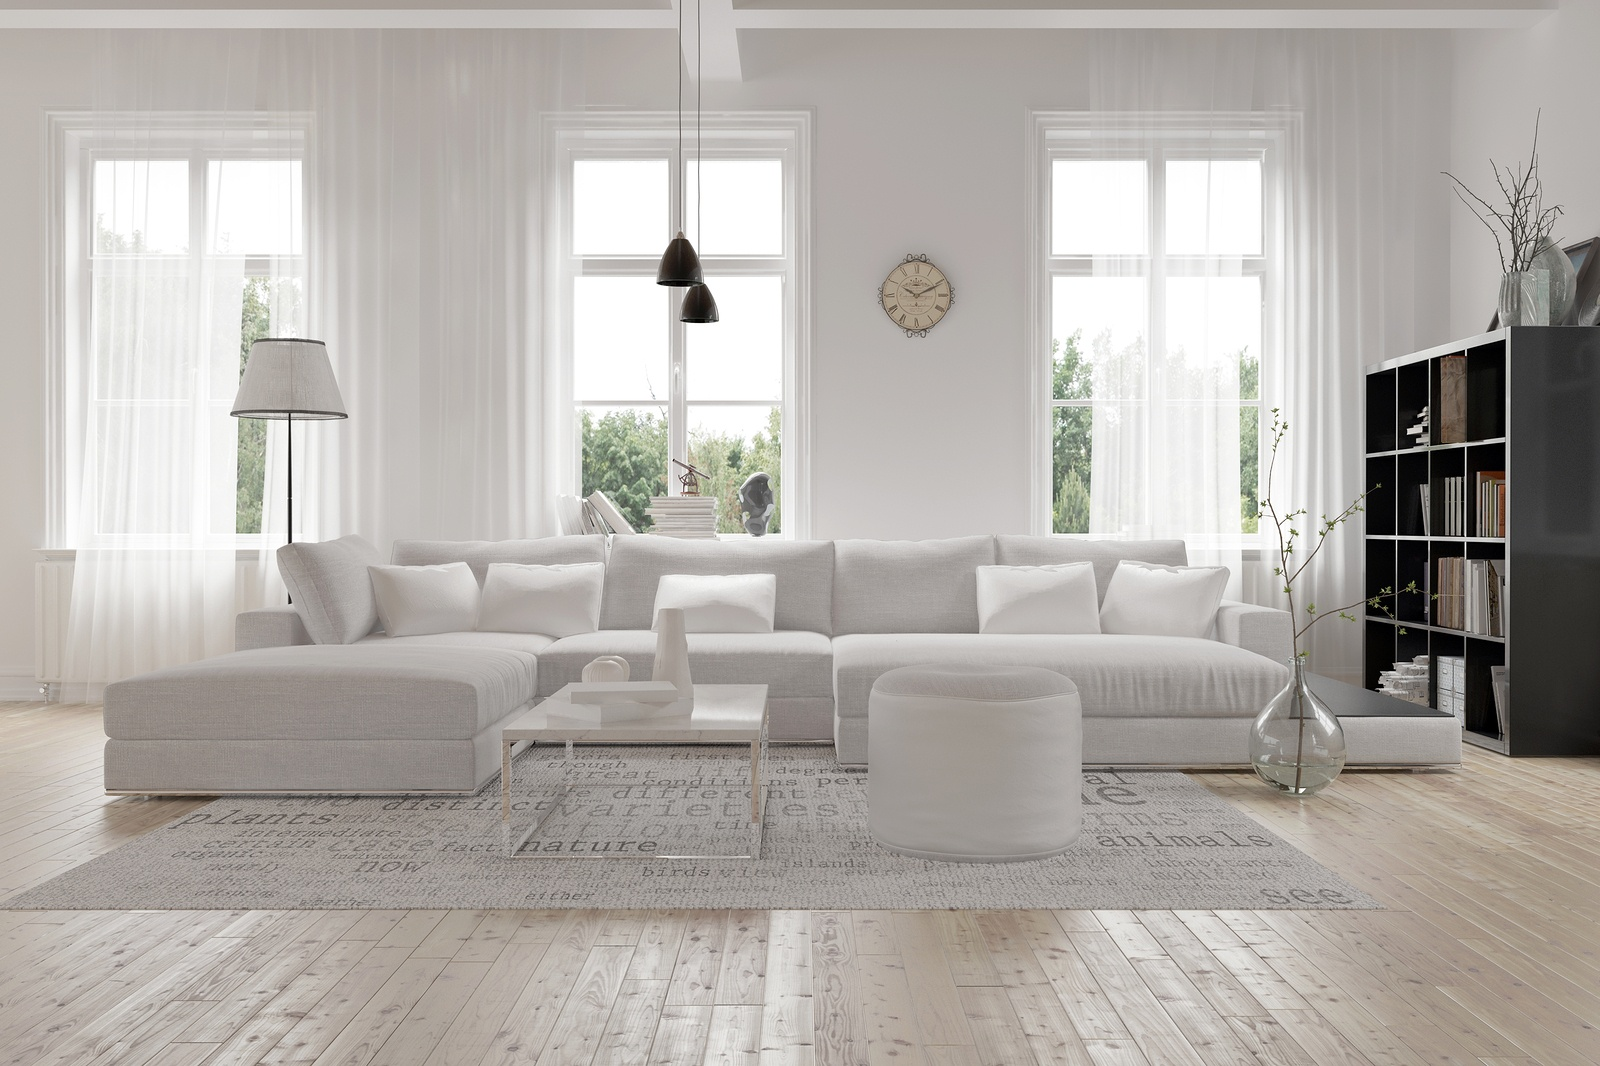 bigstock-Modern-spacious-lounge-or-livi-86398463.jpg